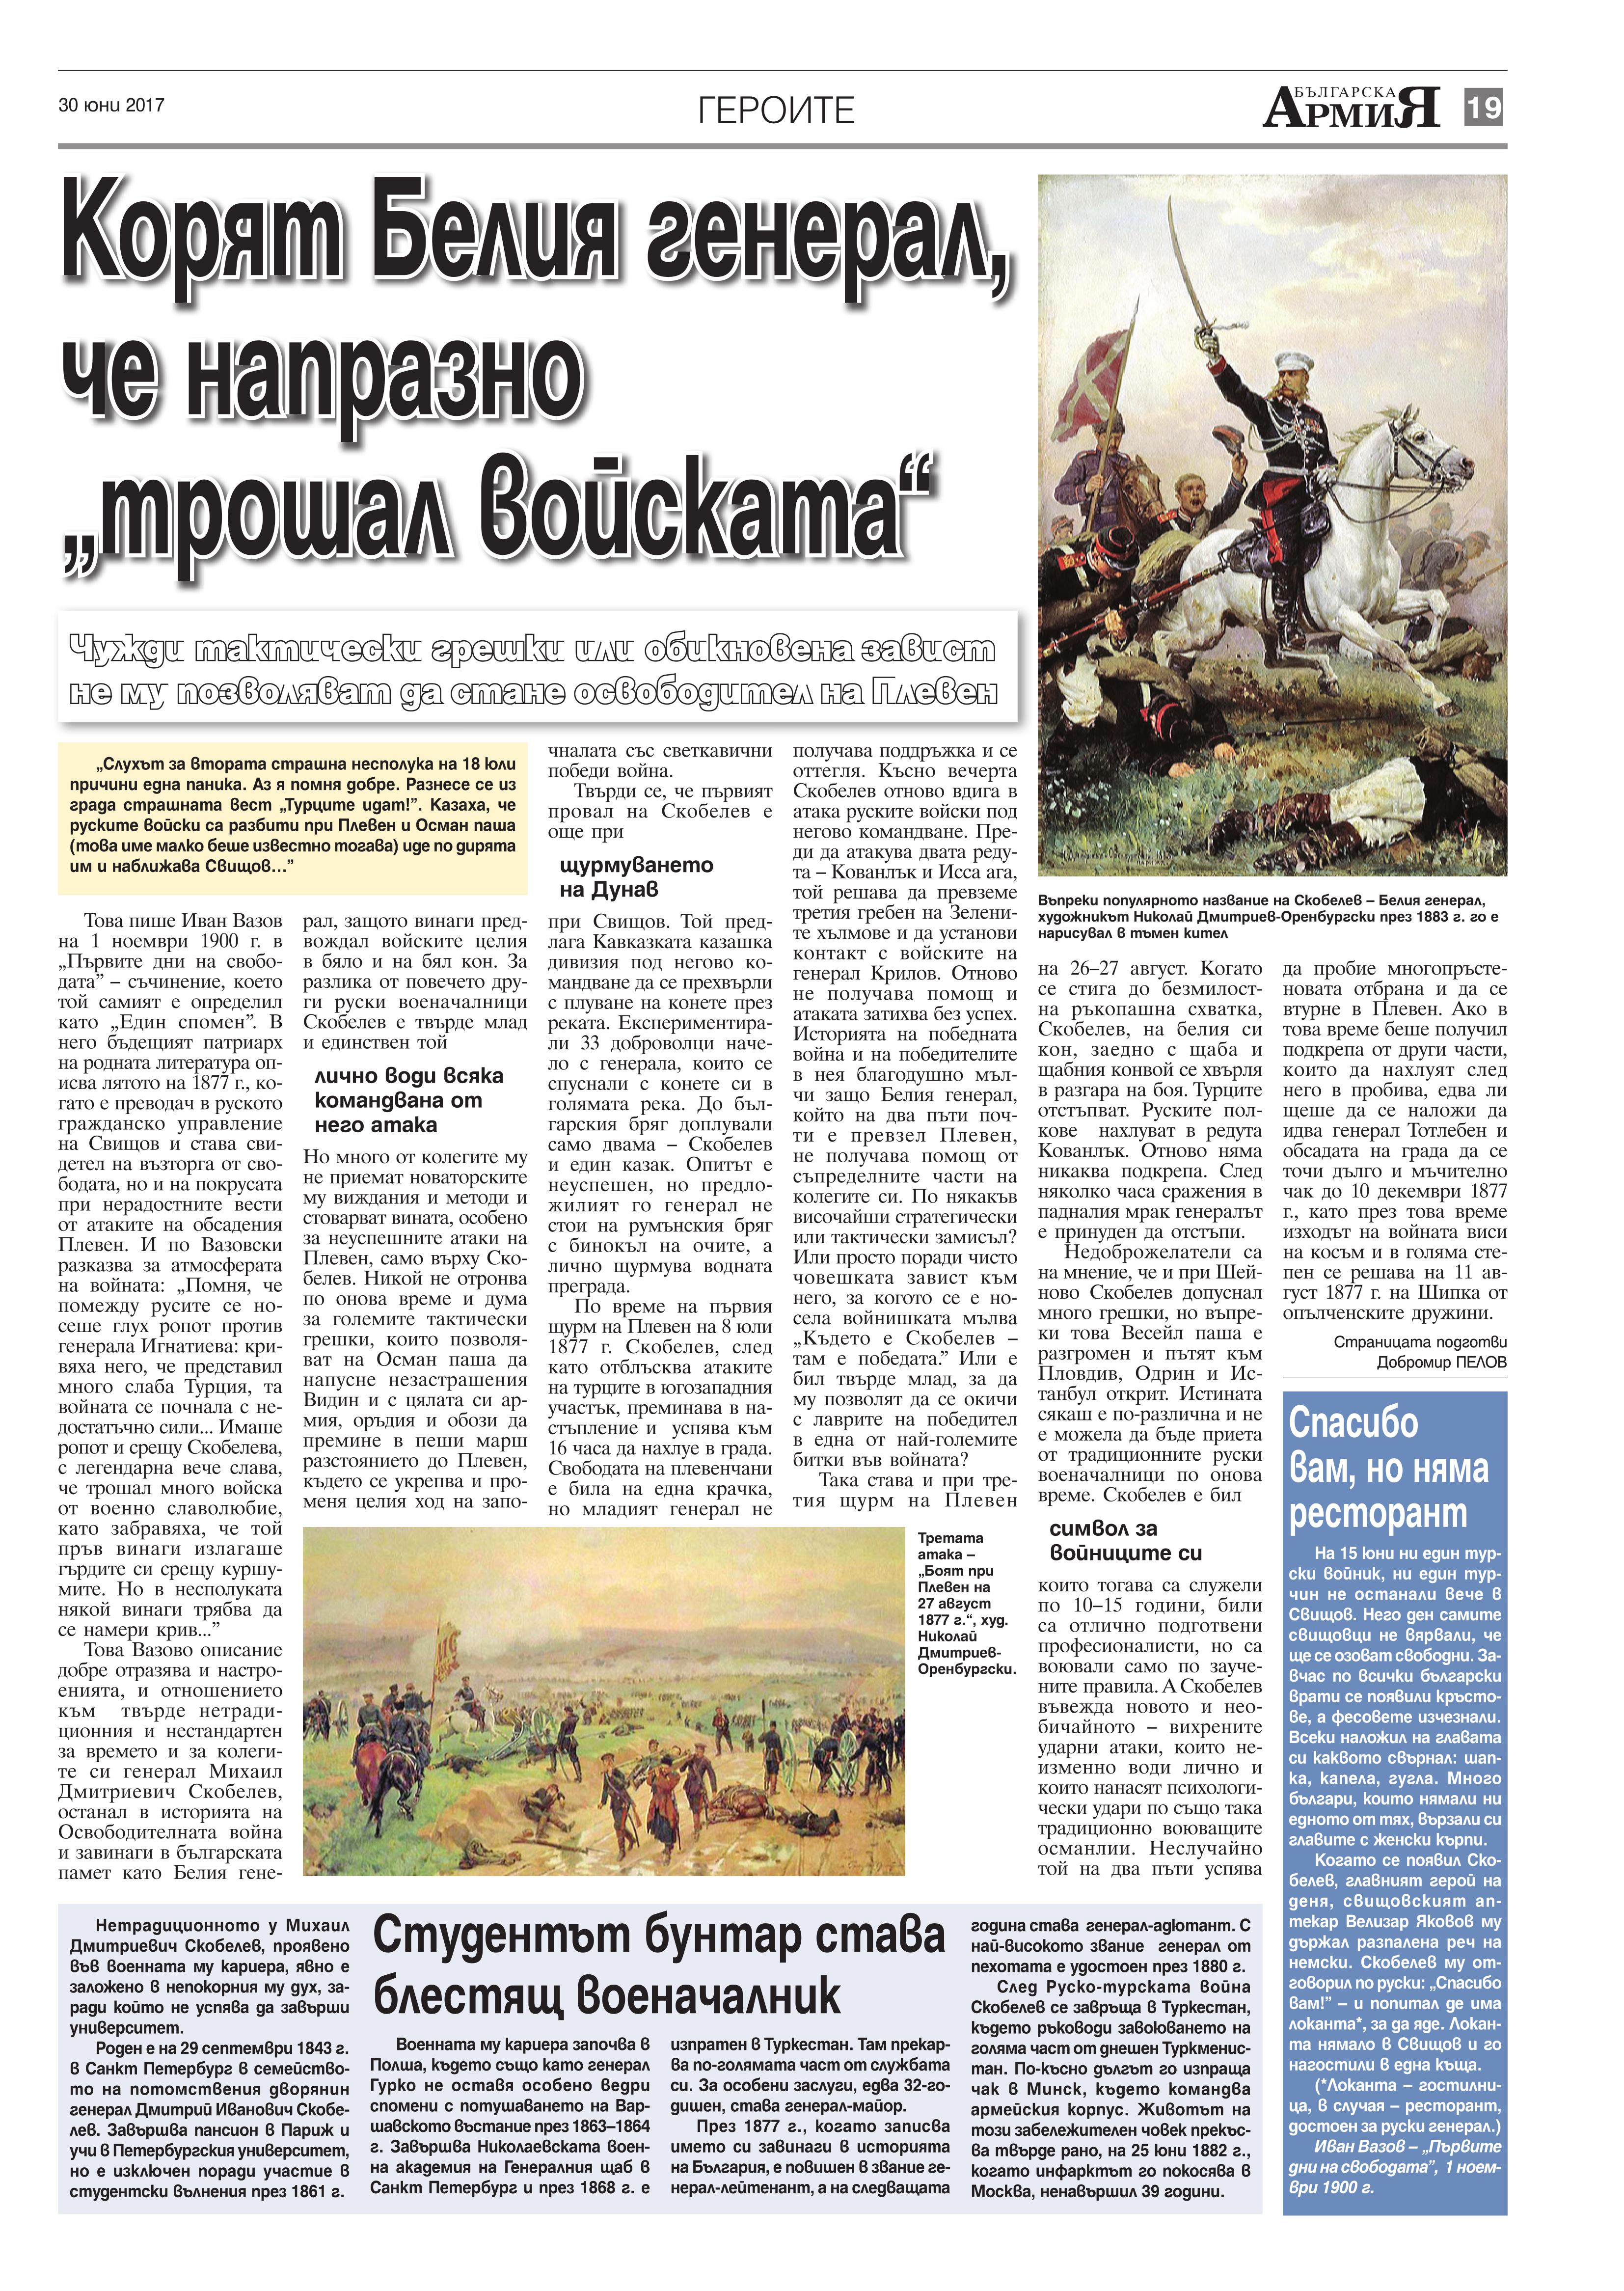 https://www.armymedia.bg/wp-content/uploads/2015/06/19.page1_-23.jpg